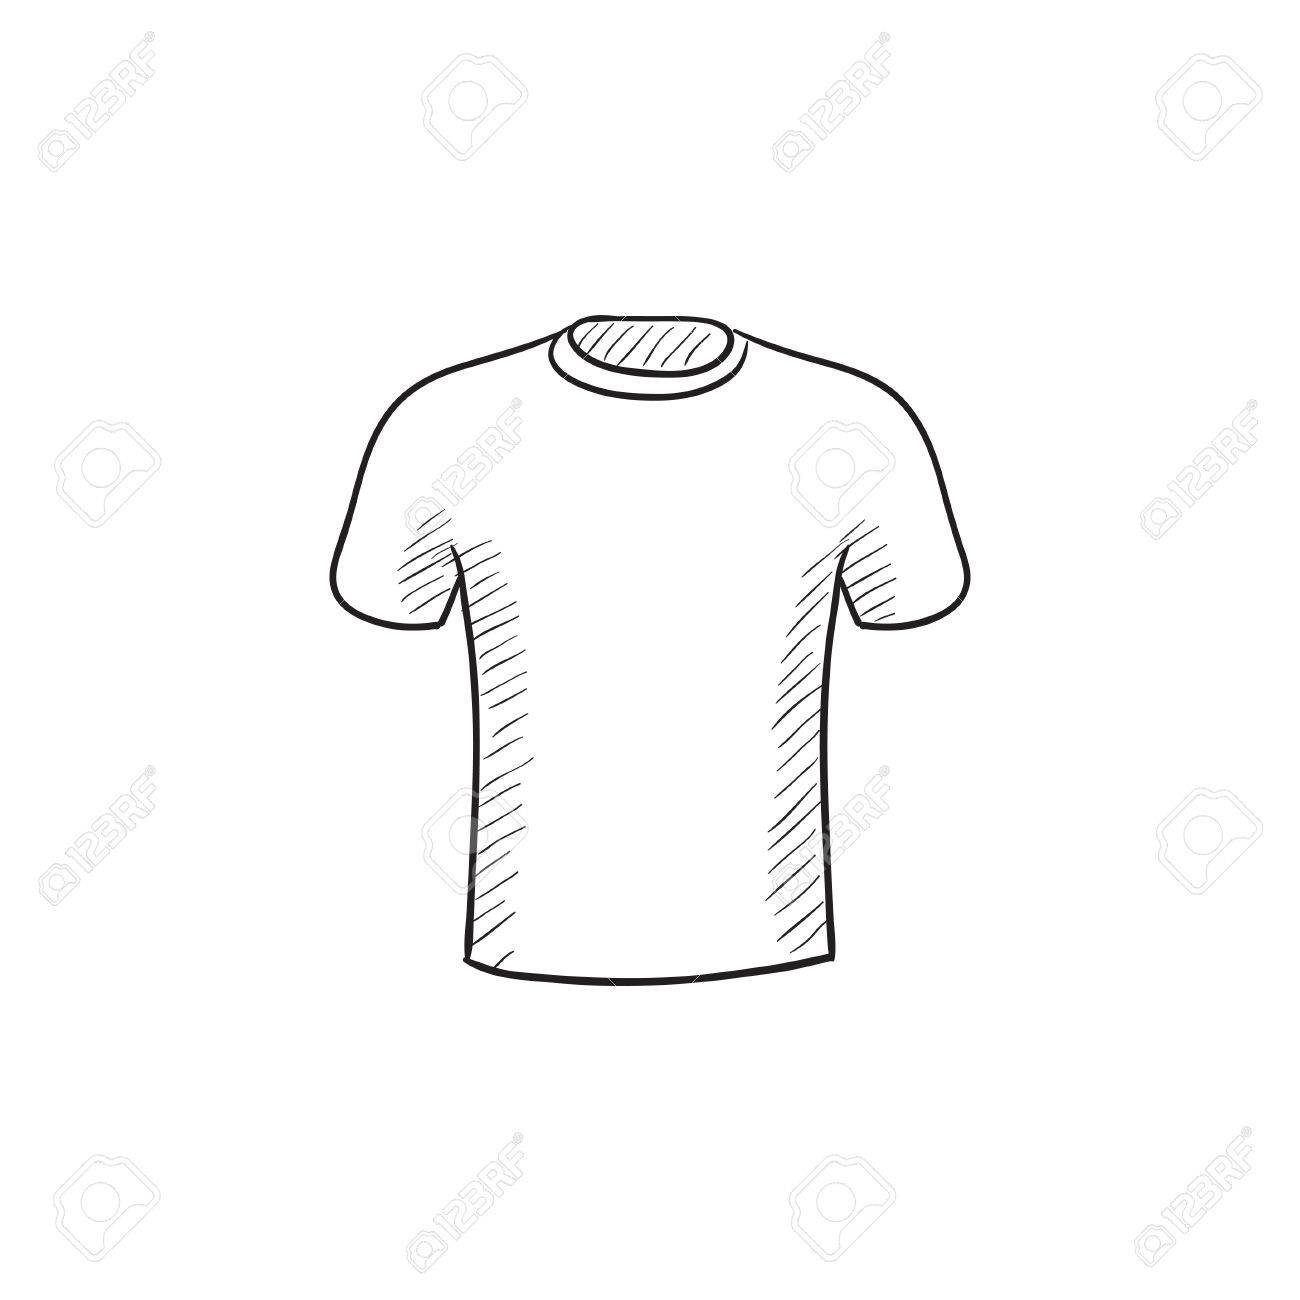 male t shirt vector sketch icon isolated on background hand